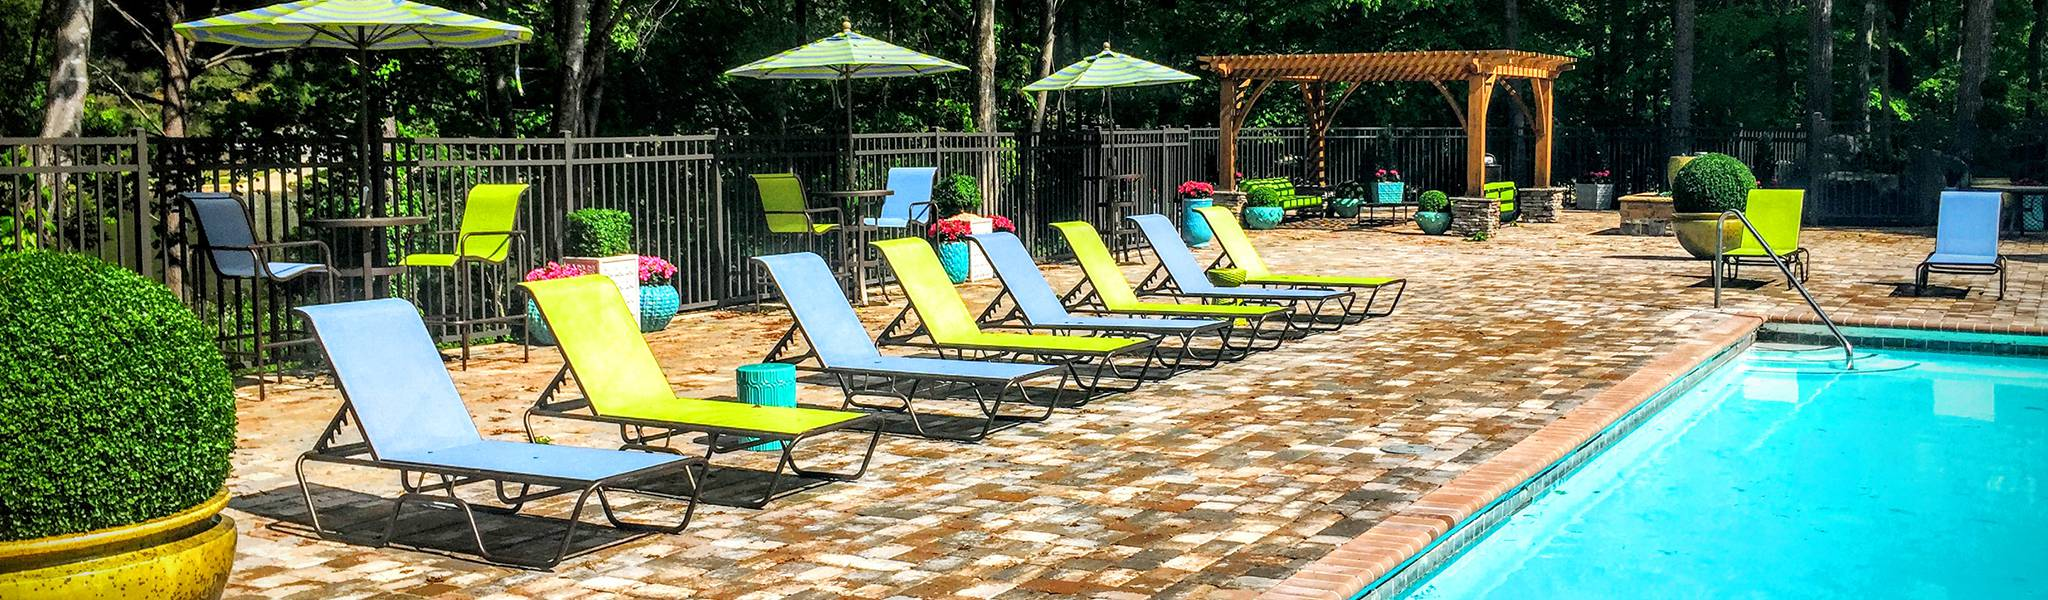 Roswell GA Apartments For Rent Aspen Square Management - Patio furniture roswell ga